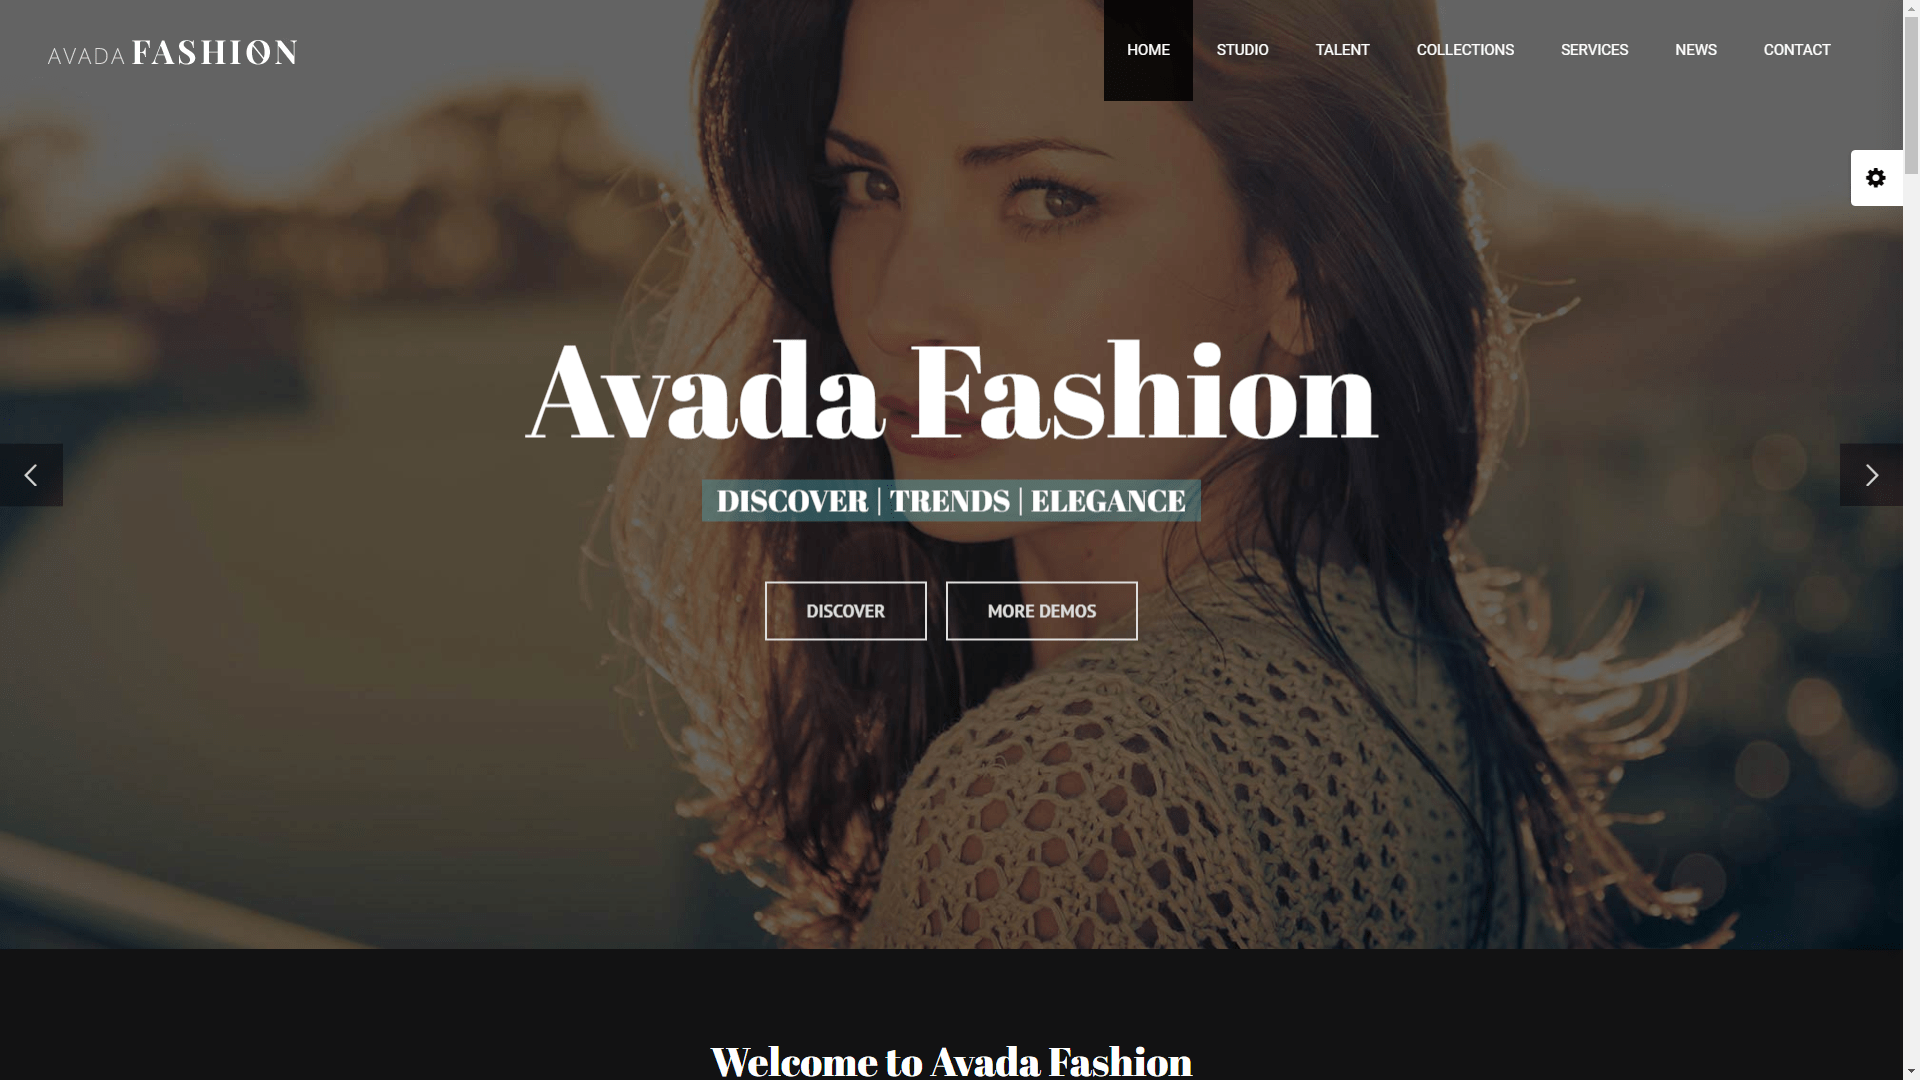 Web Design - Fashion - Newport Beach CA